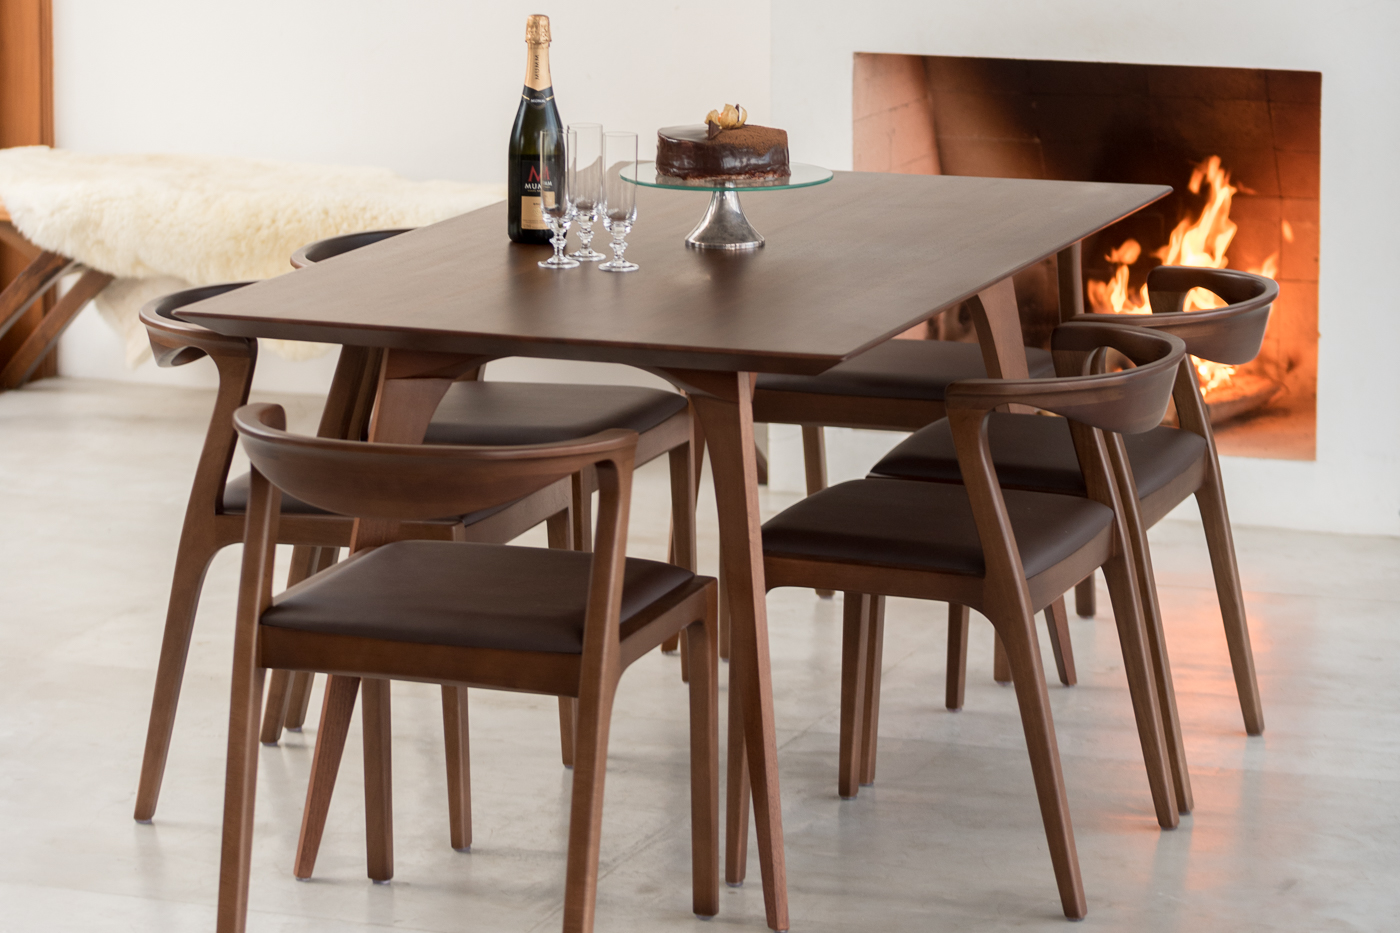 Sossego Was Formed After A Most Unexpected And Serendipitous Meeting In Ann  Arbor, Michigan Of Two Native Brazilians: The Award Winning Furniture  Designer ...